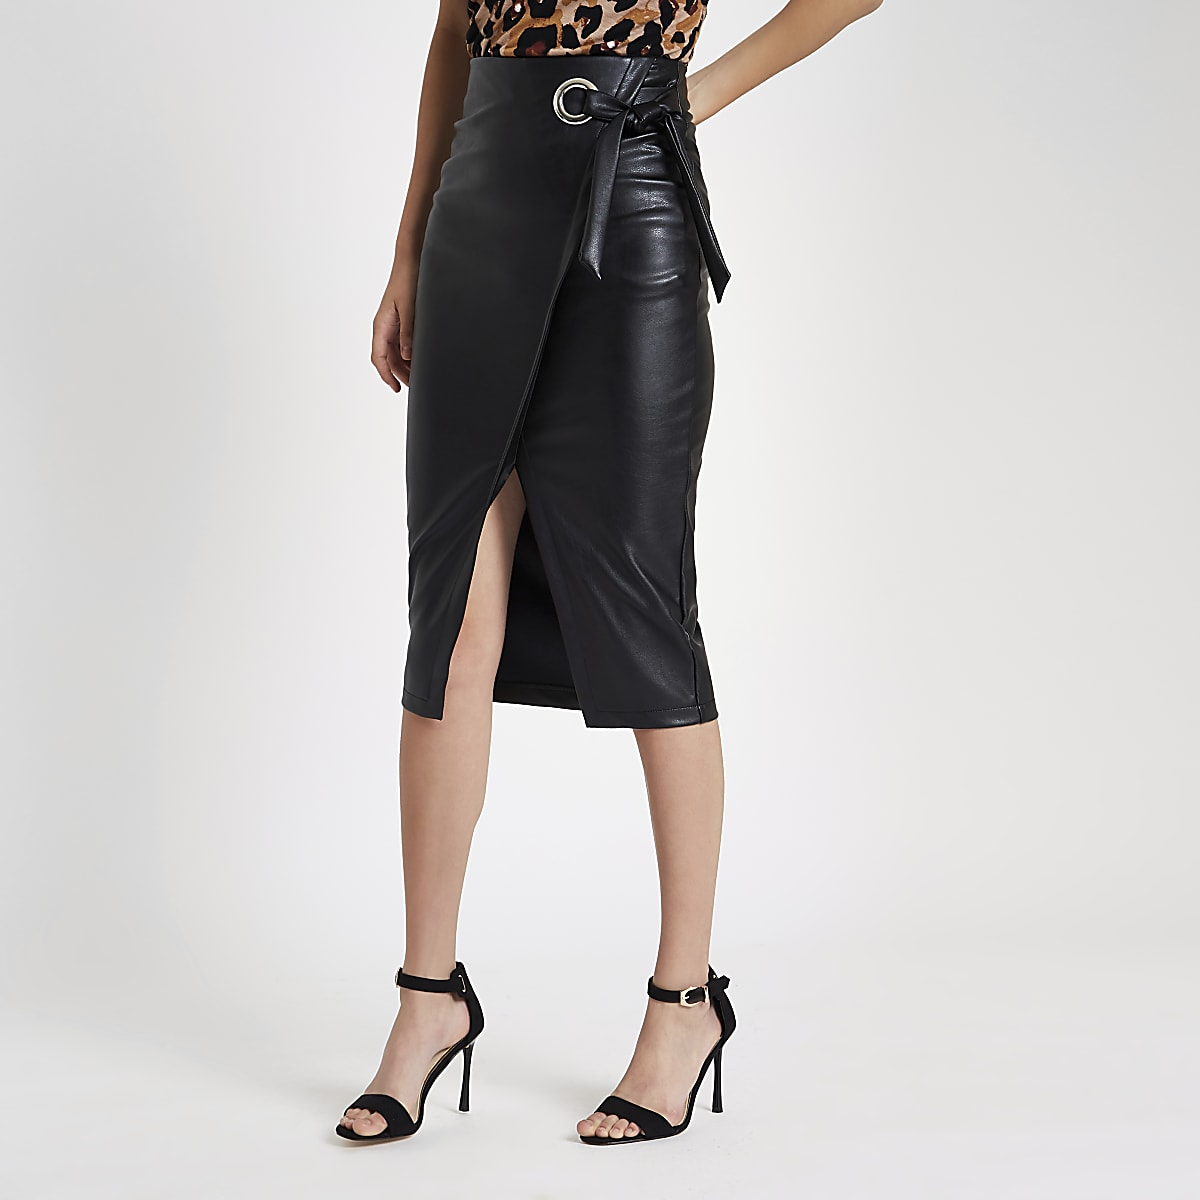 d29ce8f87 Black faux leather wrap tie-up pencil skirt - Midi Skirts - Skirts - women